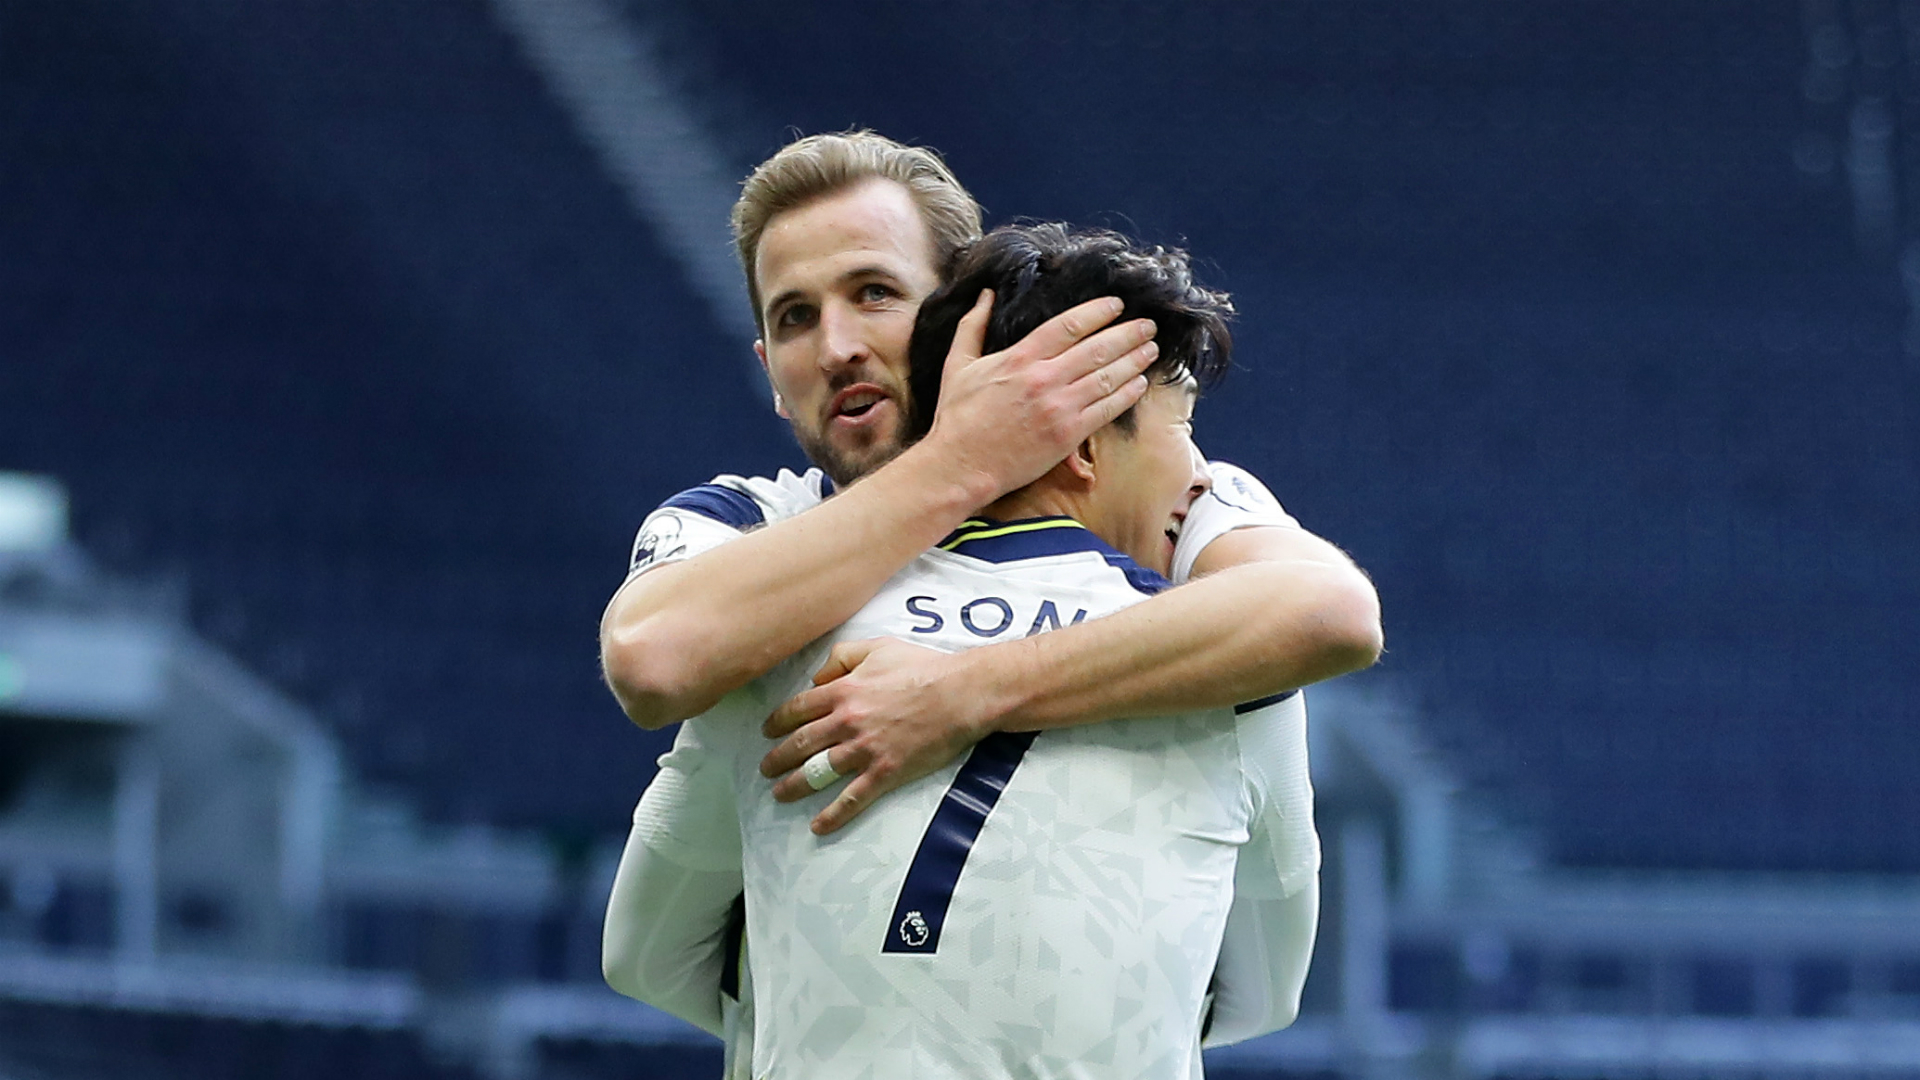 Premier League data dive: Son reaches century, Kane completes the set and Blades make unwanted history